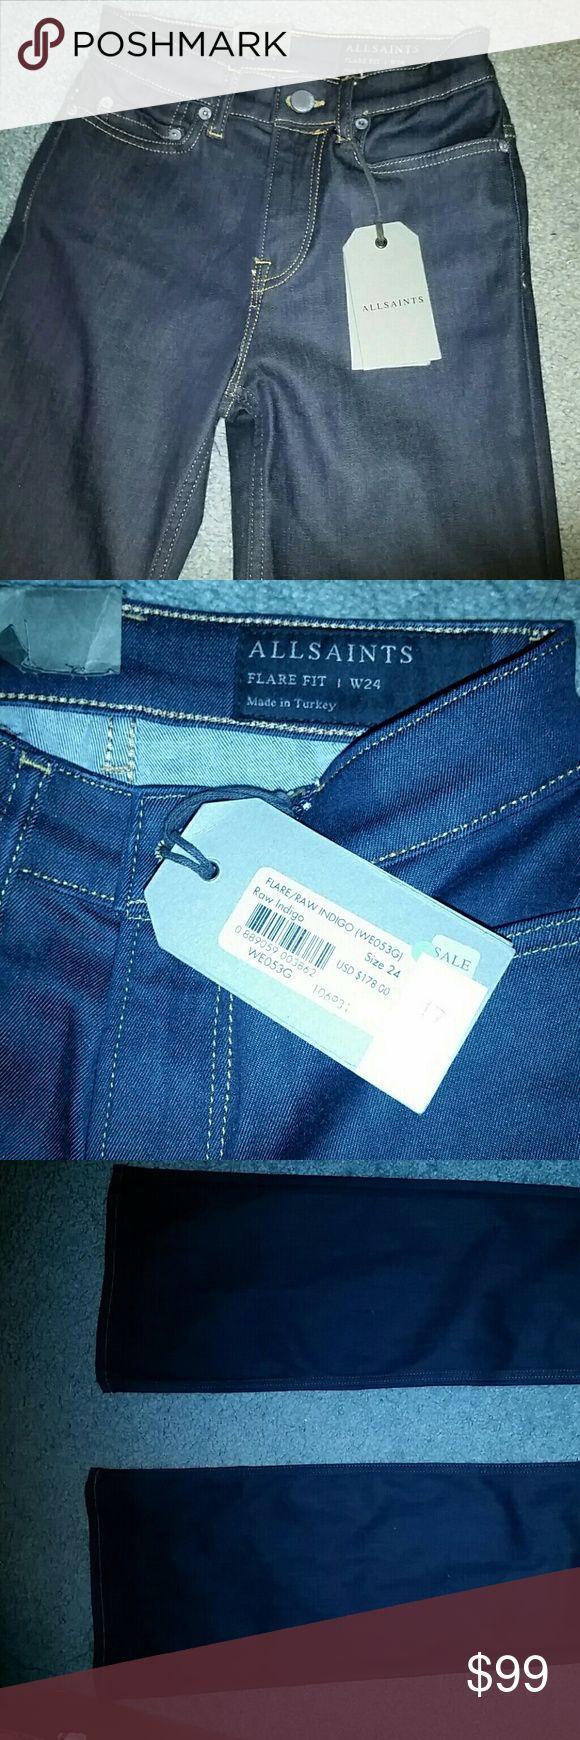 ALLSAINTS boot leg leg dark blue jeans 24 Beautiful raw indigo color with trending boot leg bottom. So amazing with any outfit! Never worn. New with tags. Originally $178!! All Saints Jeans Flare & Wide Leg